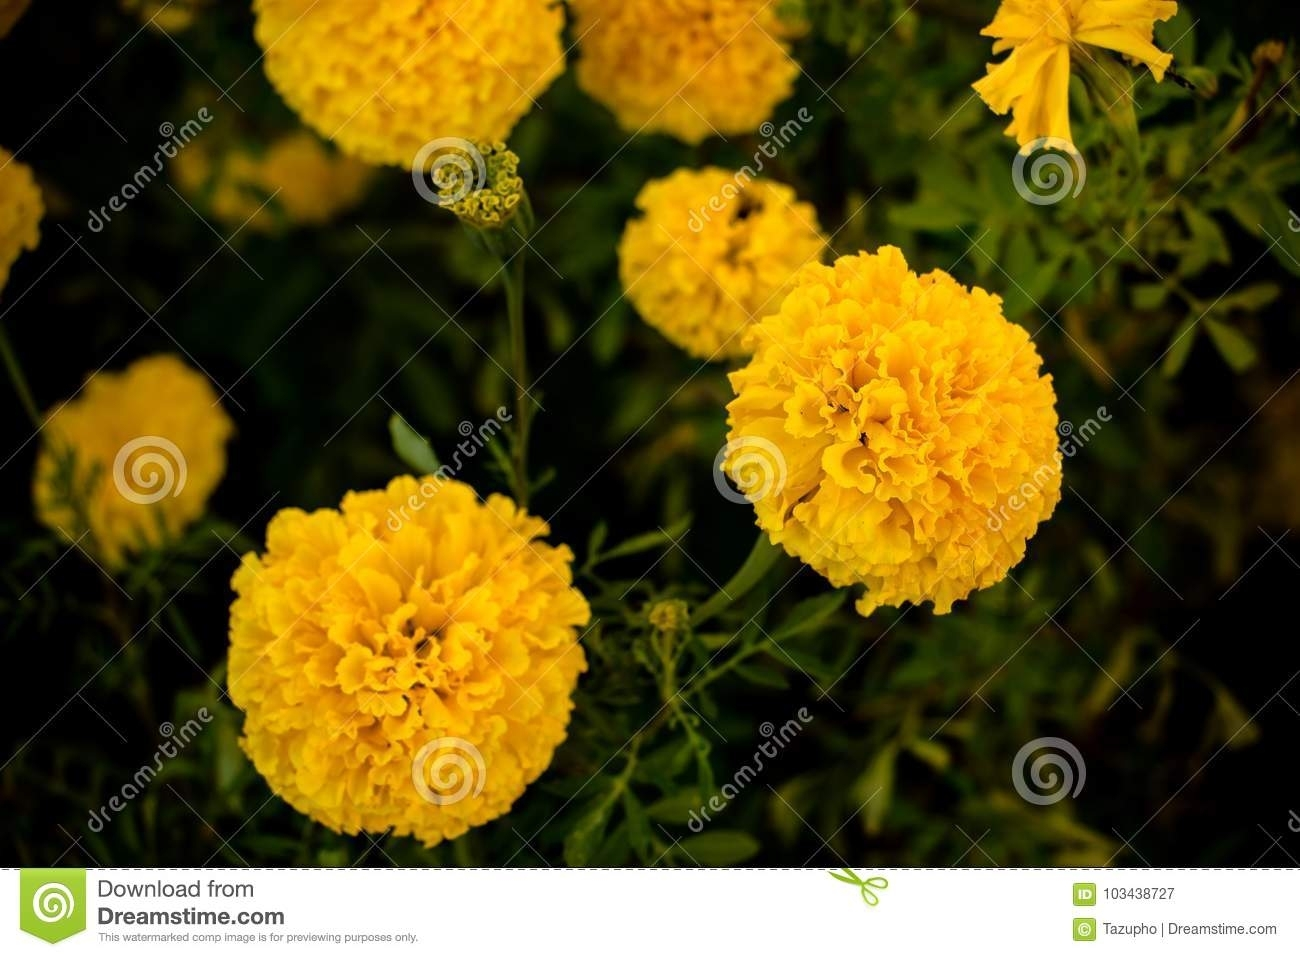 Closeup Photo Of Marigold Flowers. The Yellow-Orange Color Flower intended for Garden Flower Usually Yellow Or Orange